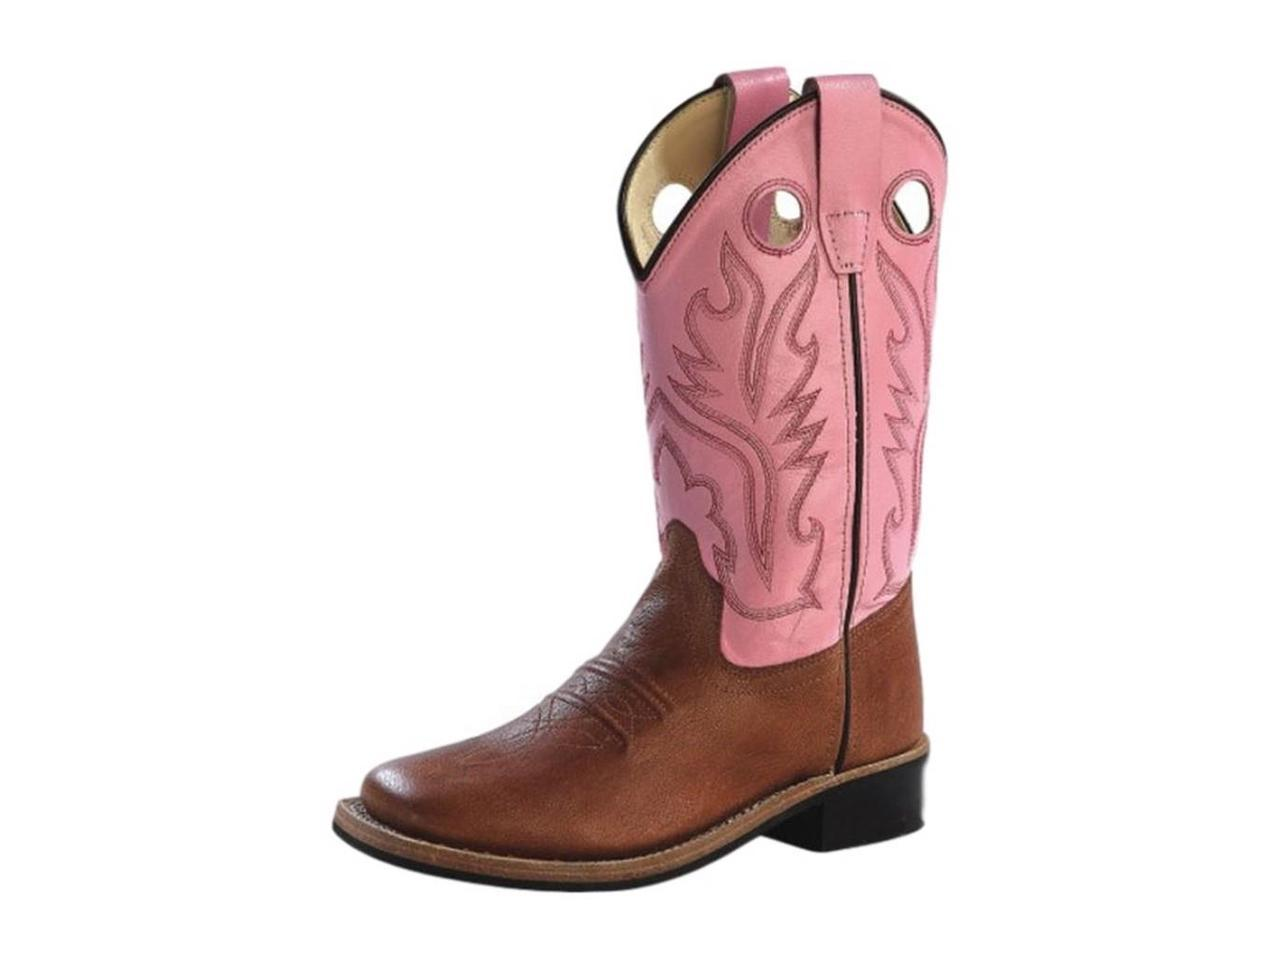 Old West Cowboy Cowboy Cowboy Boots Girls Rubber 2.5 Child Tan Canyon Pink BSC1839 2e2f59